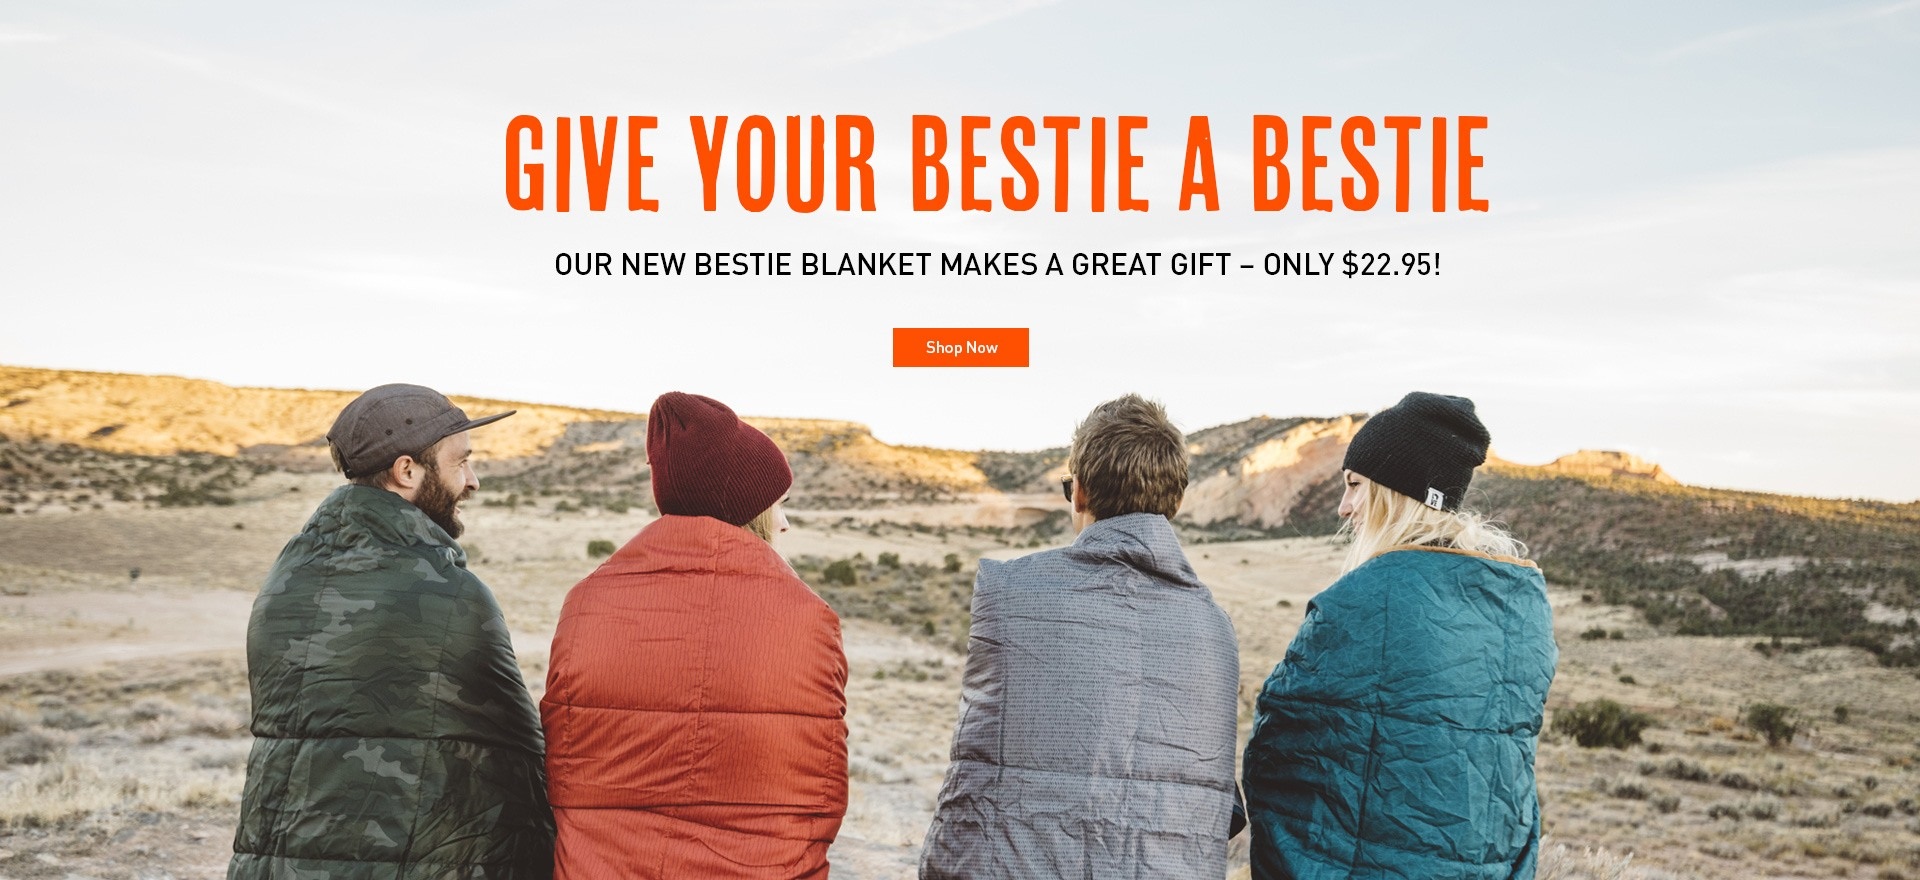 Our New Bestie Blanket Makes a Great Gift!